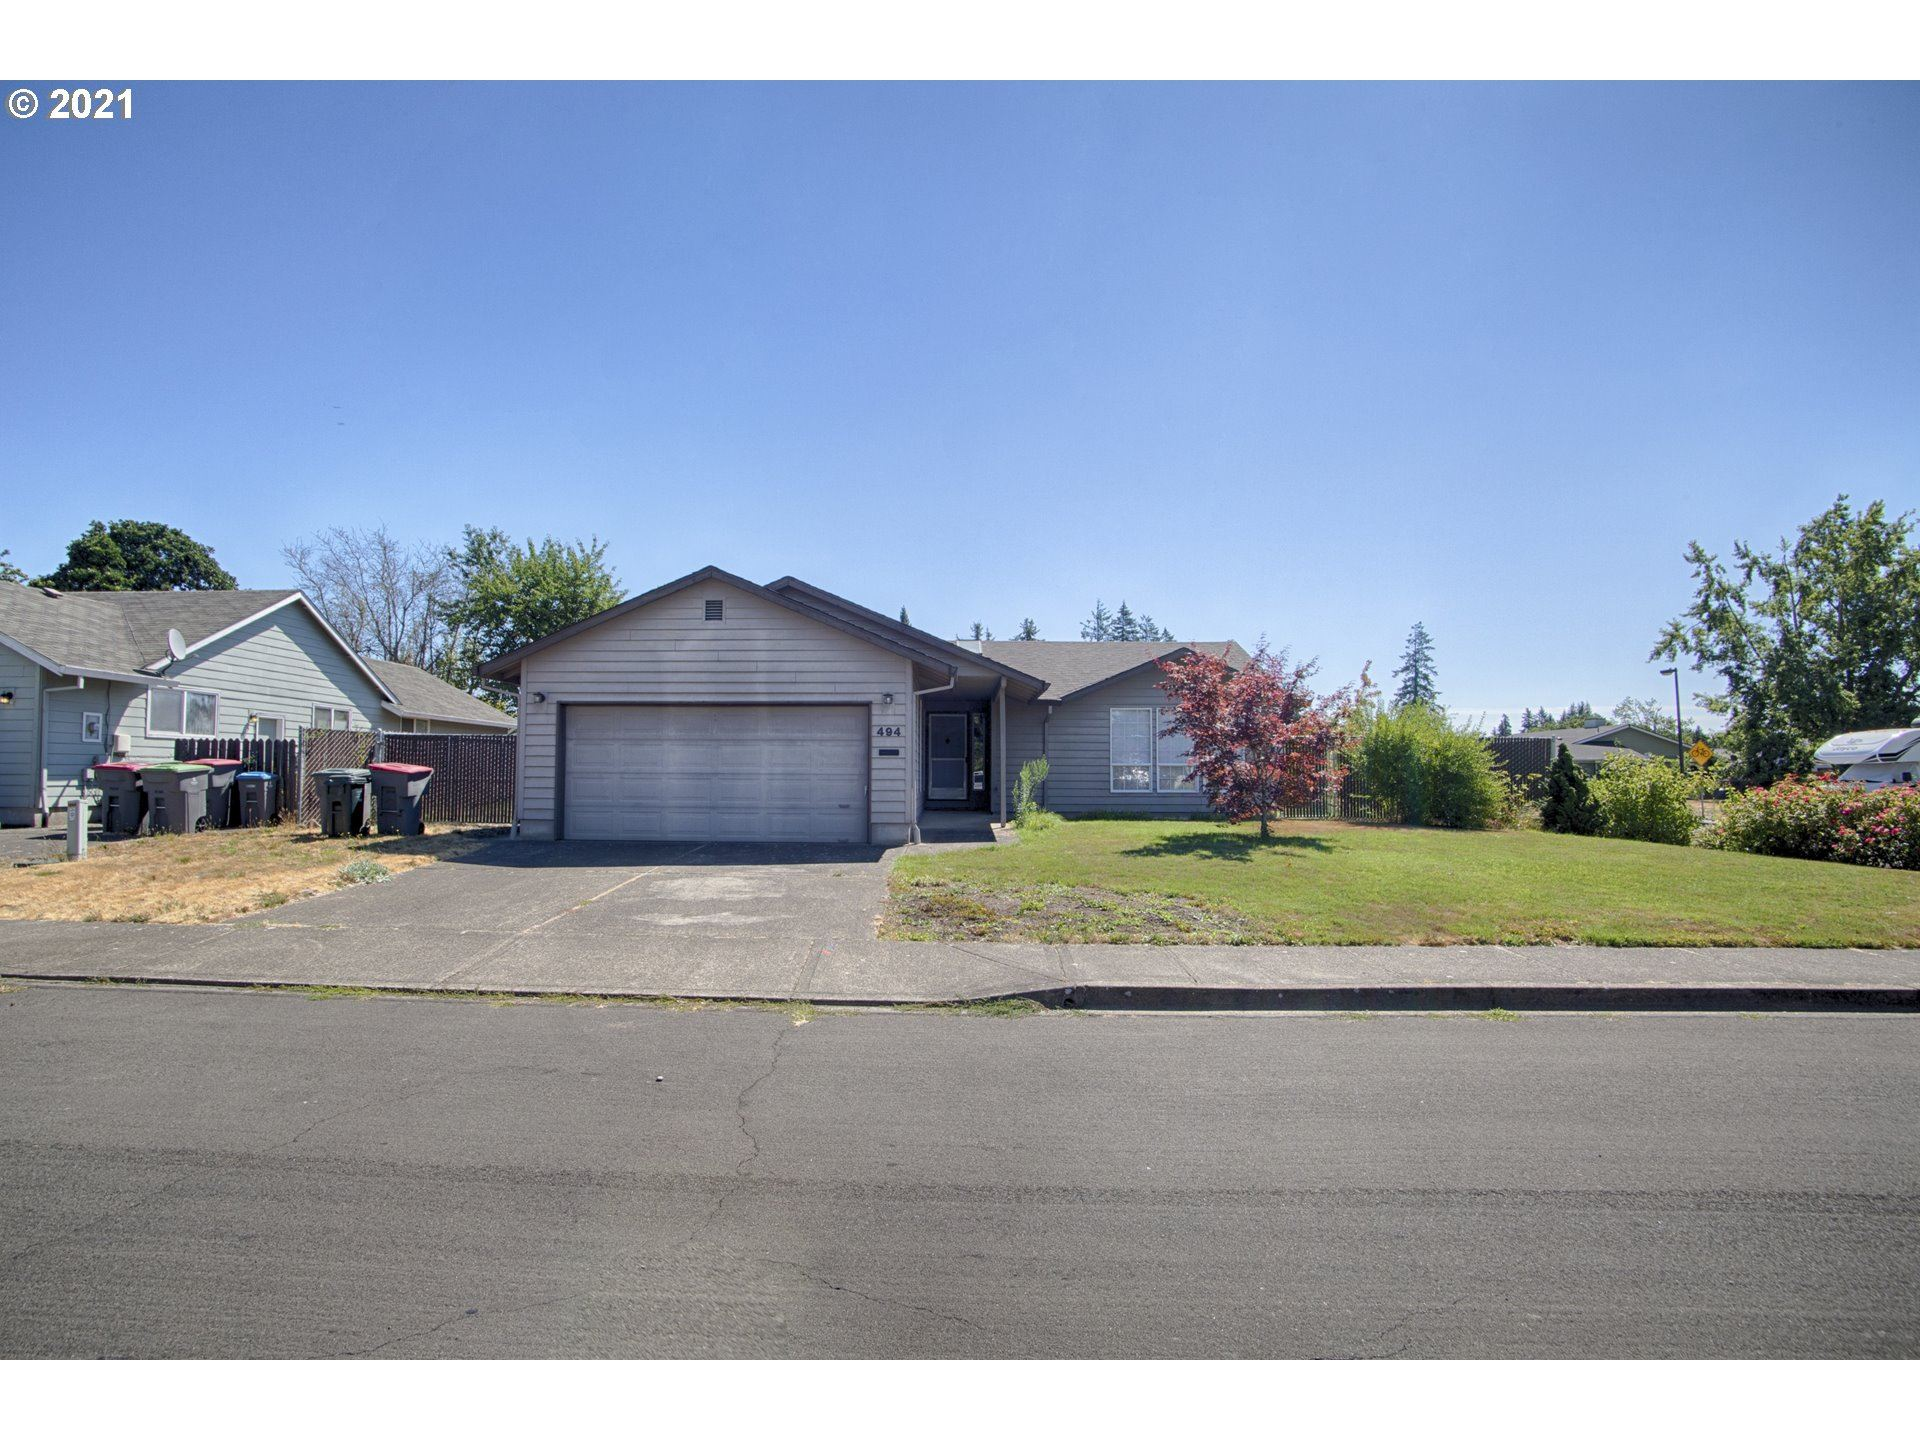 494 SW WESTVIEW DR, McMinnville, OR 97128 - MLS#: 21231309